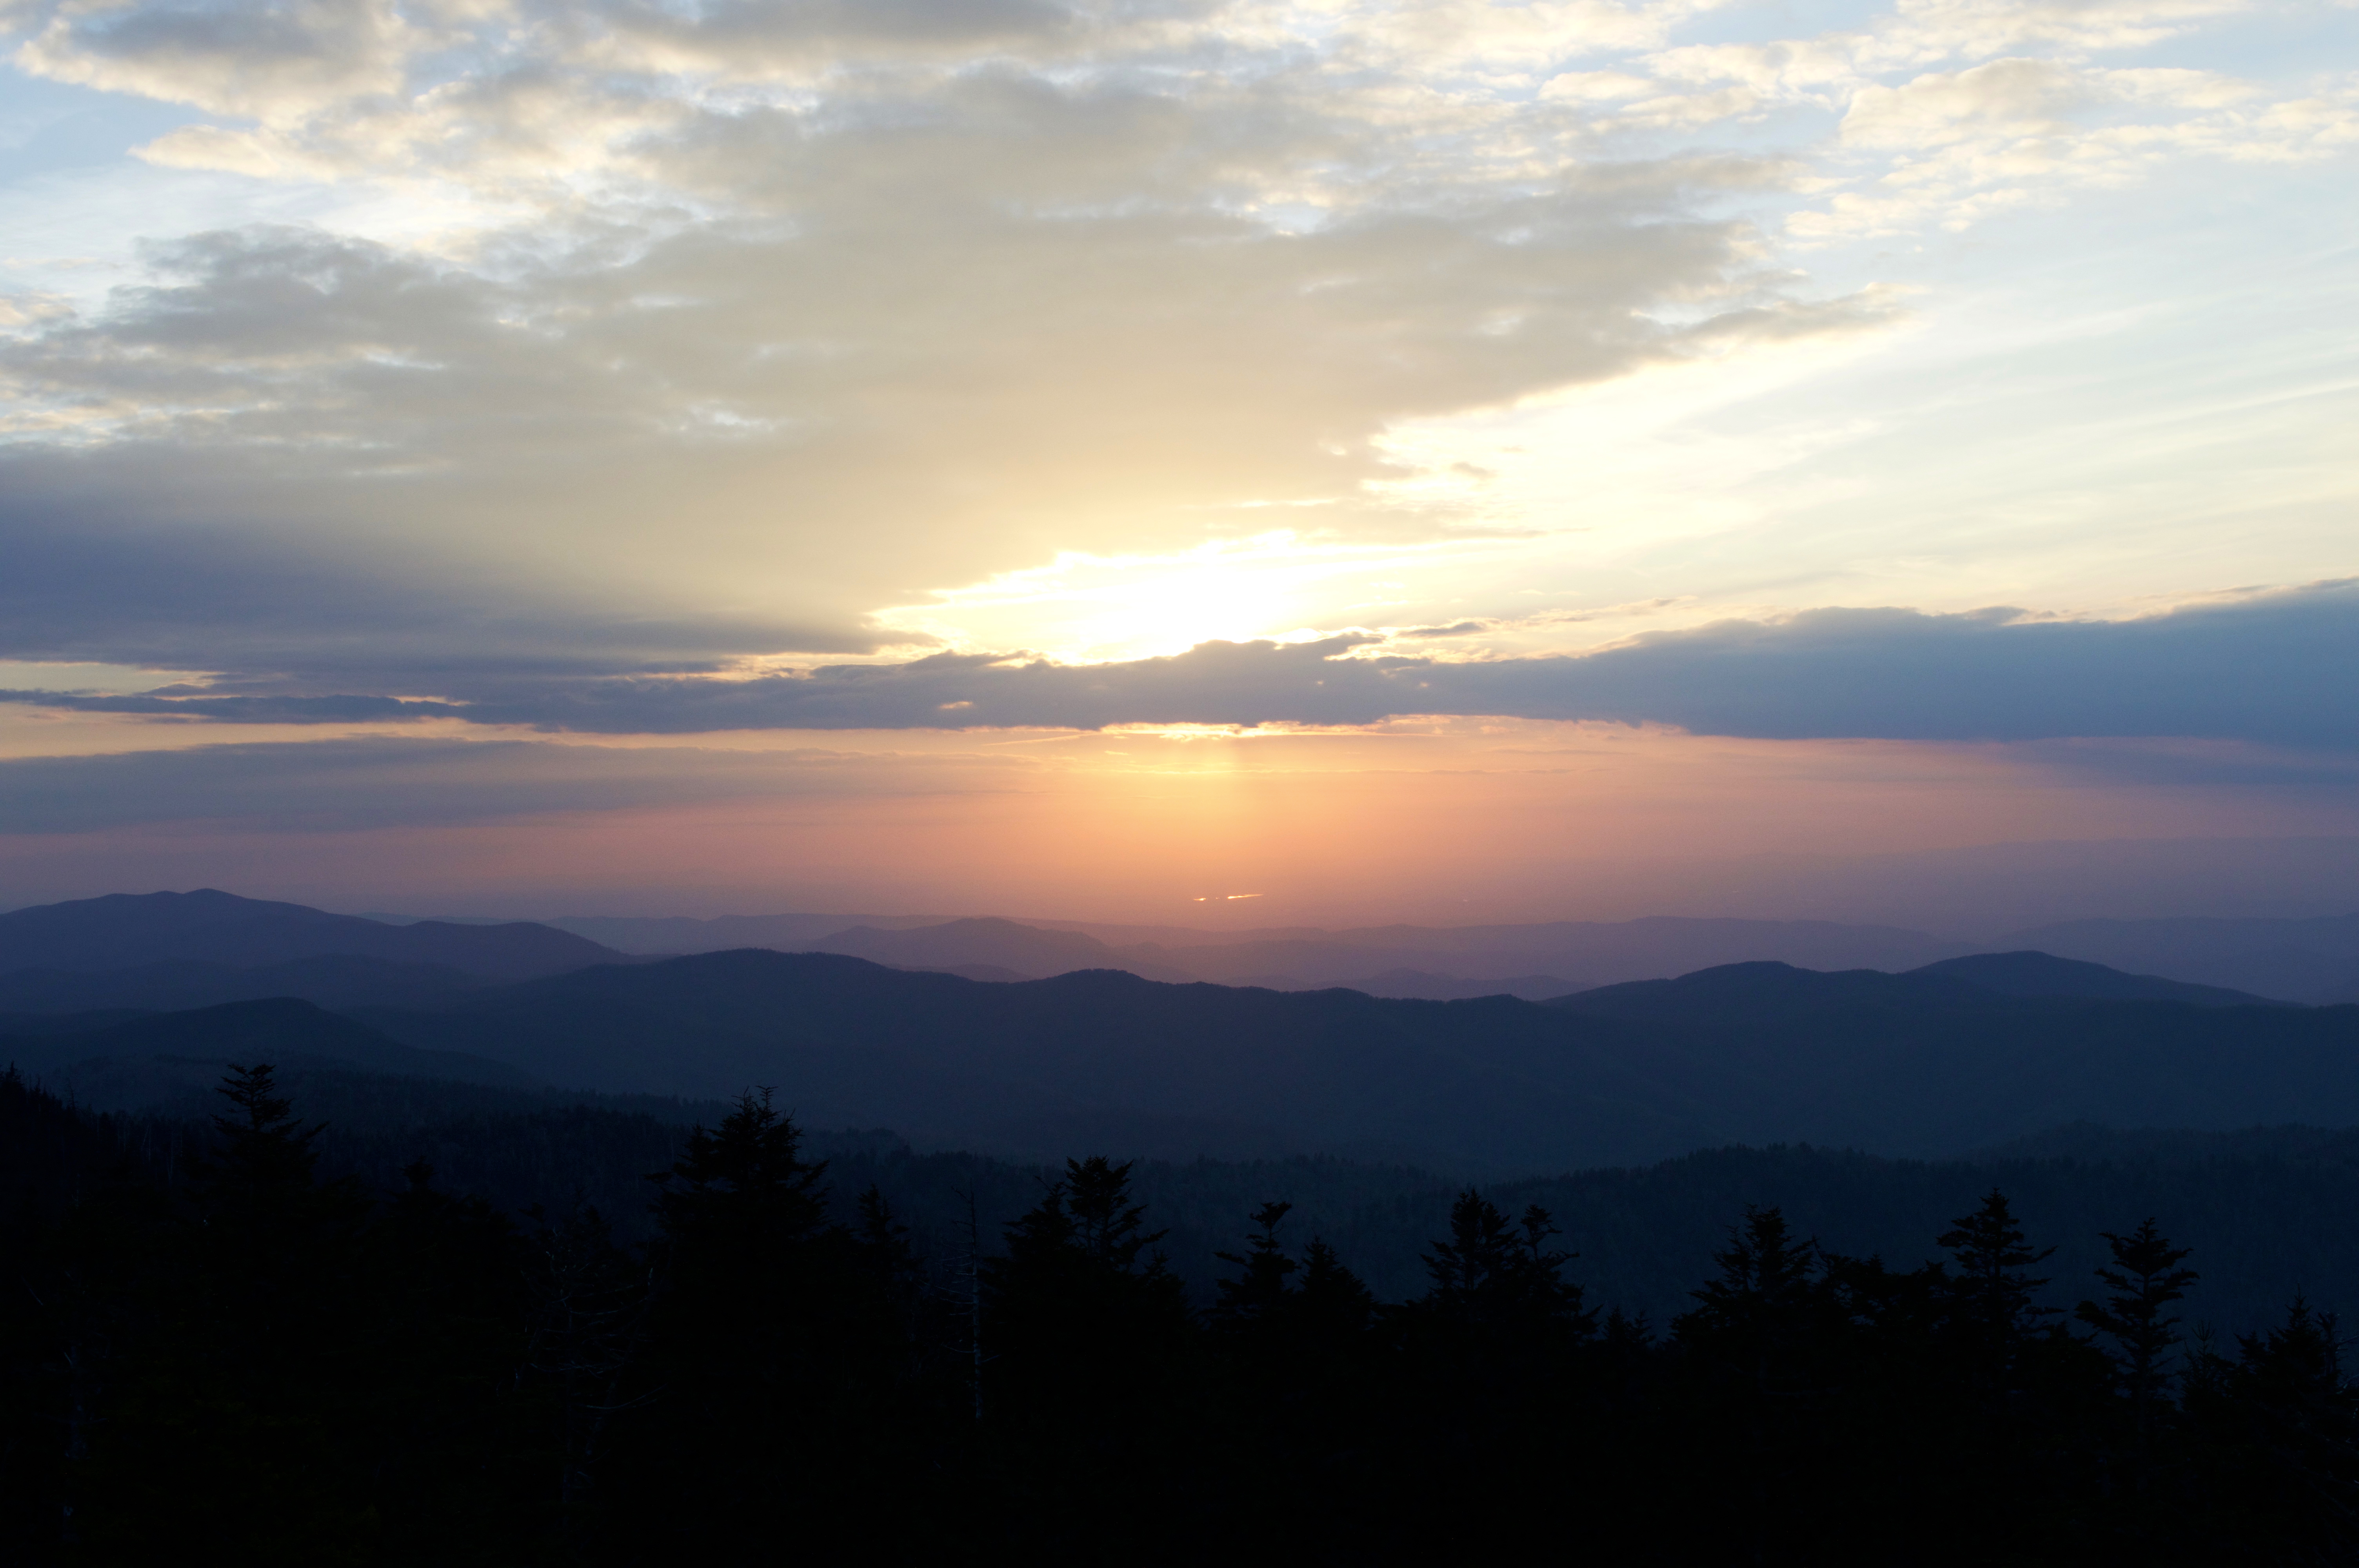 Sunset at Great Smoky Mountains National Park